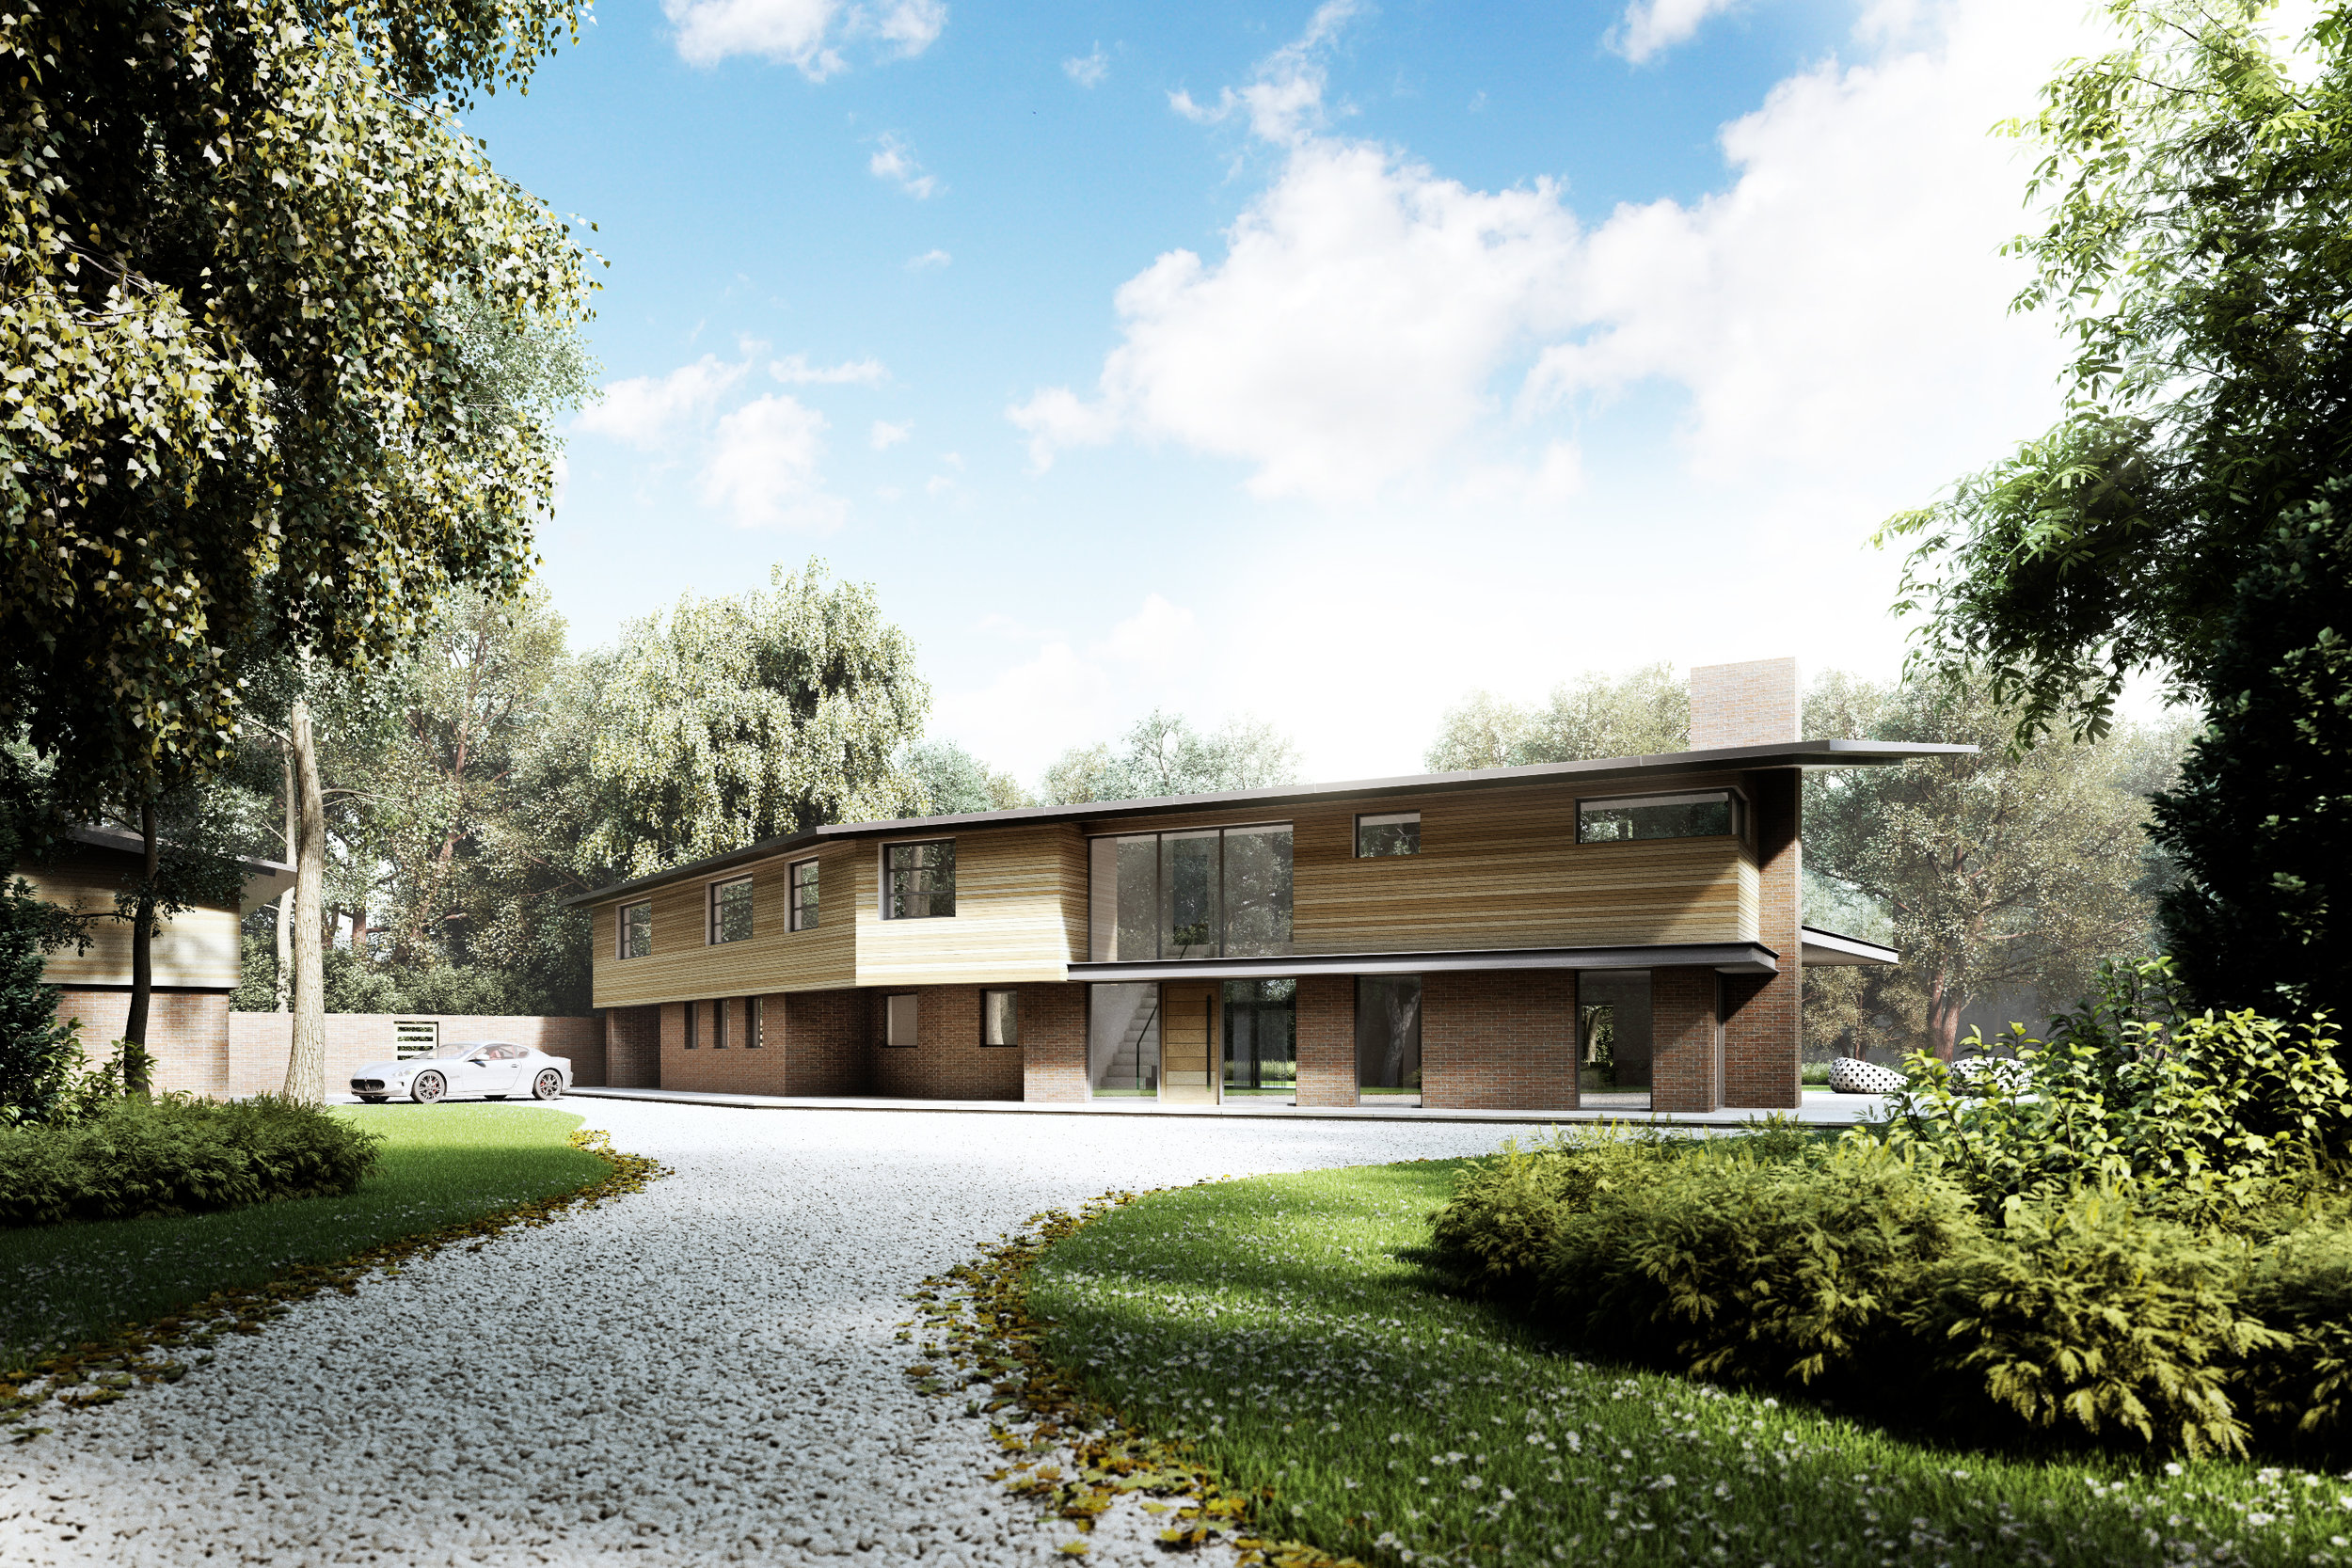 Tony Holt Design_Self Build_New Build_Beechfield_Exterior 01_cgi.jpg